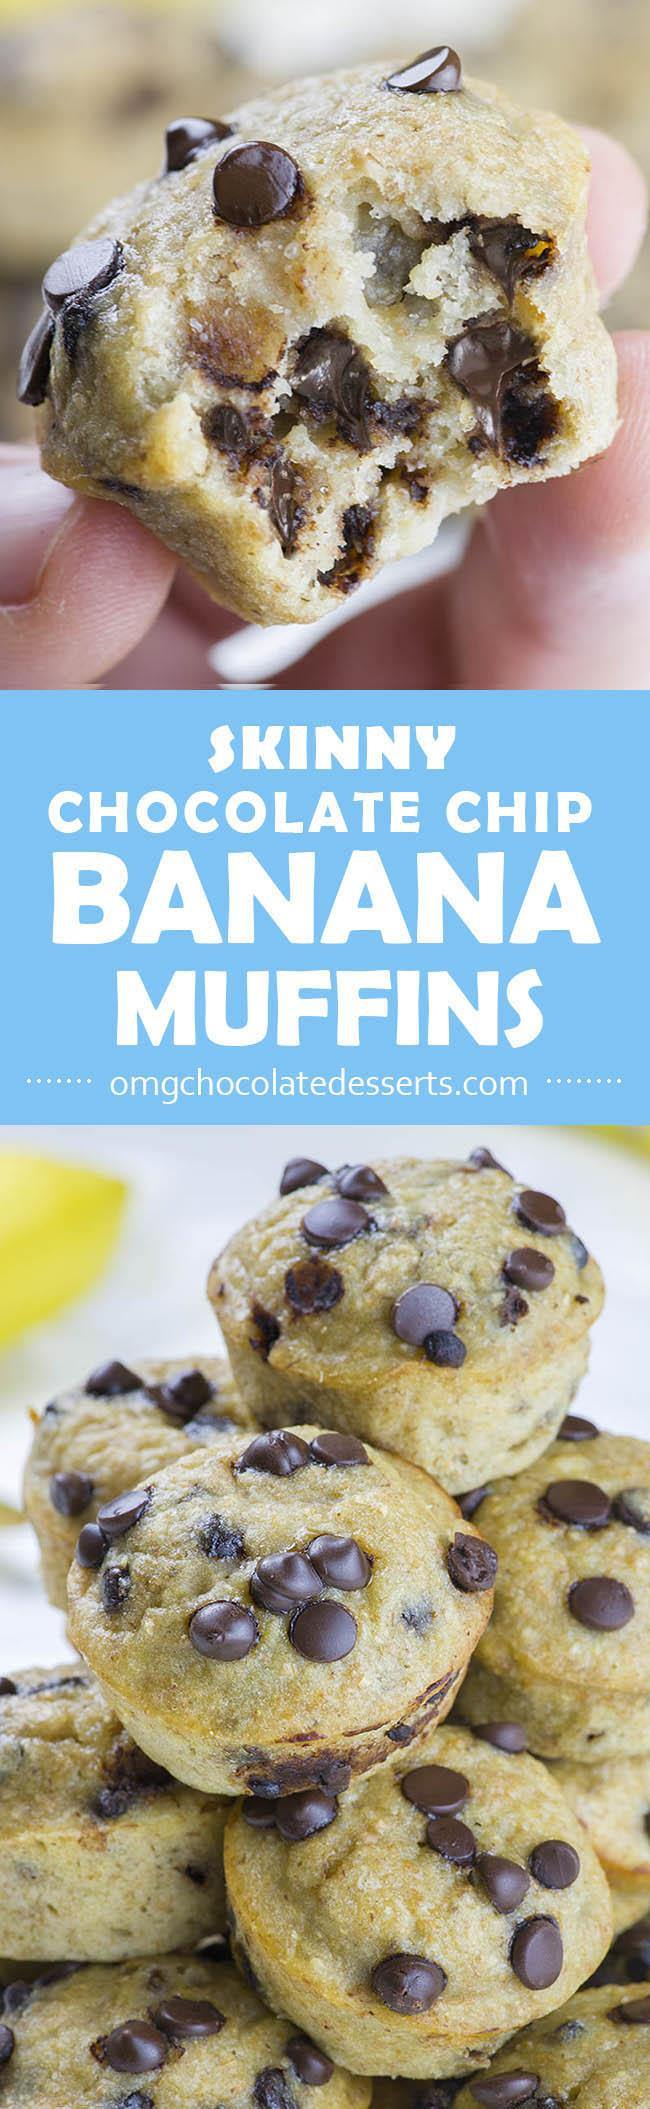 Skinny Chocolate Chip Banana Muffins - OMG Chocolate Desserts